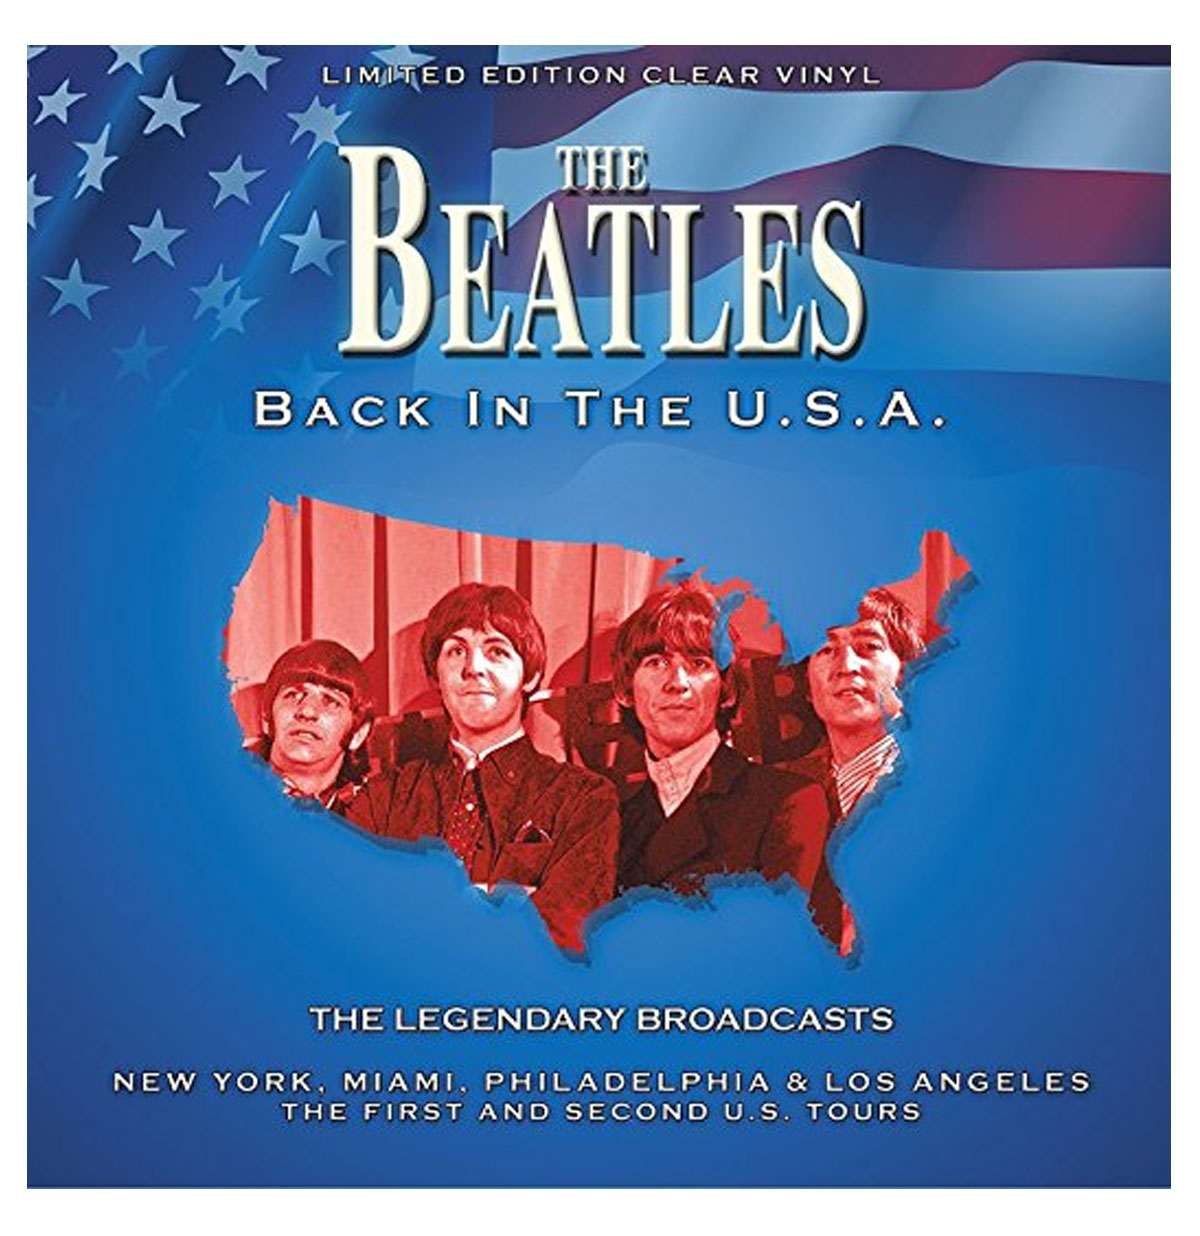 The Beatles - Back in the U.S.A. LP - LIMITED EDITION